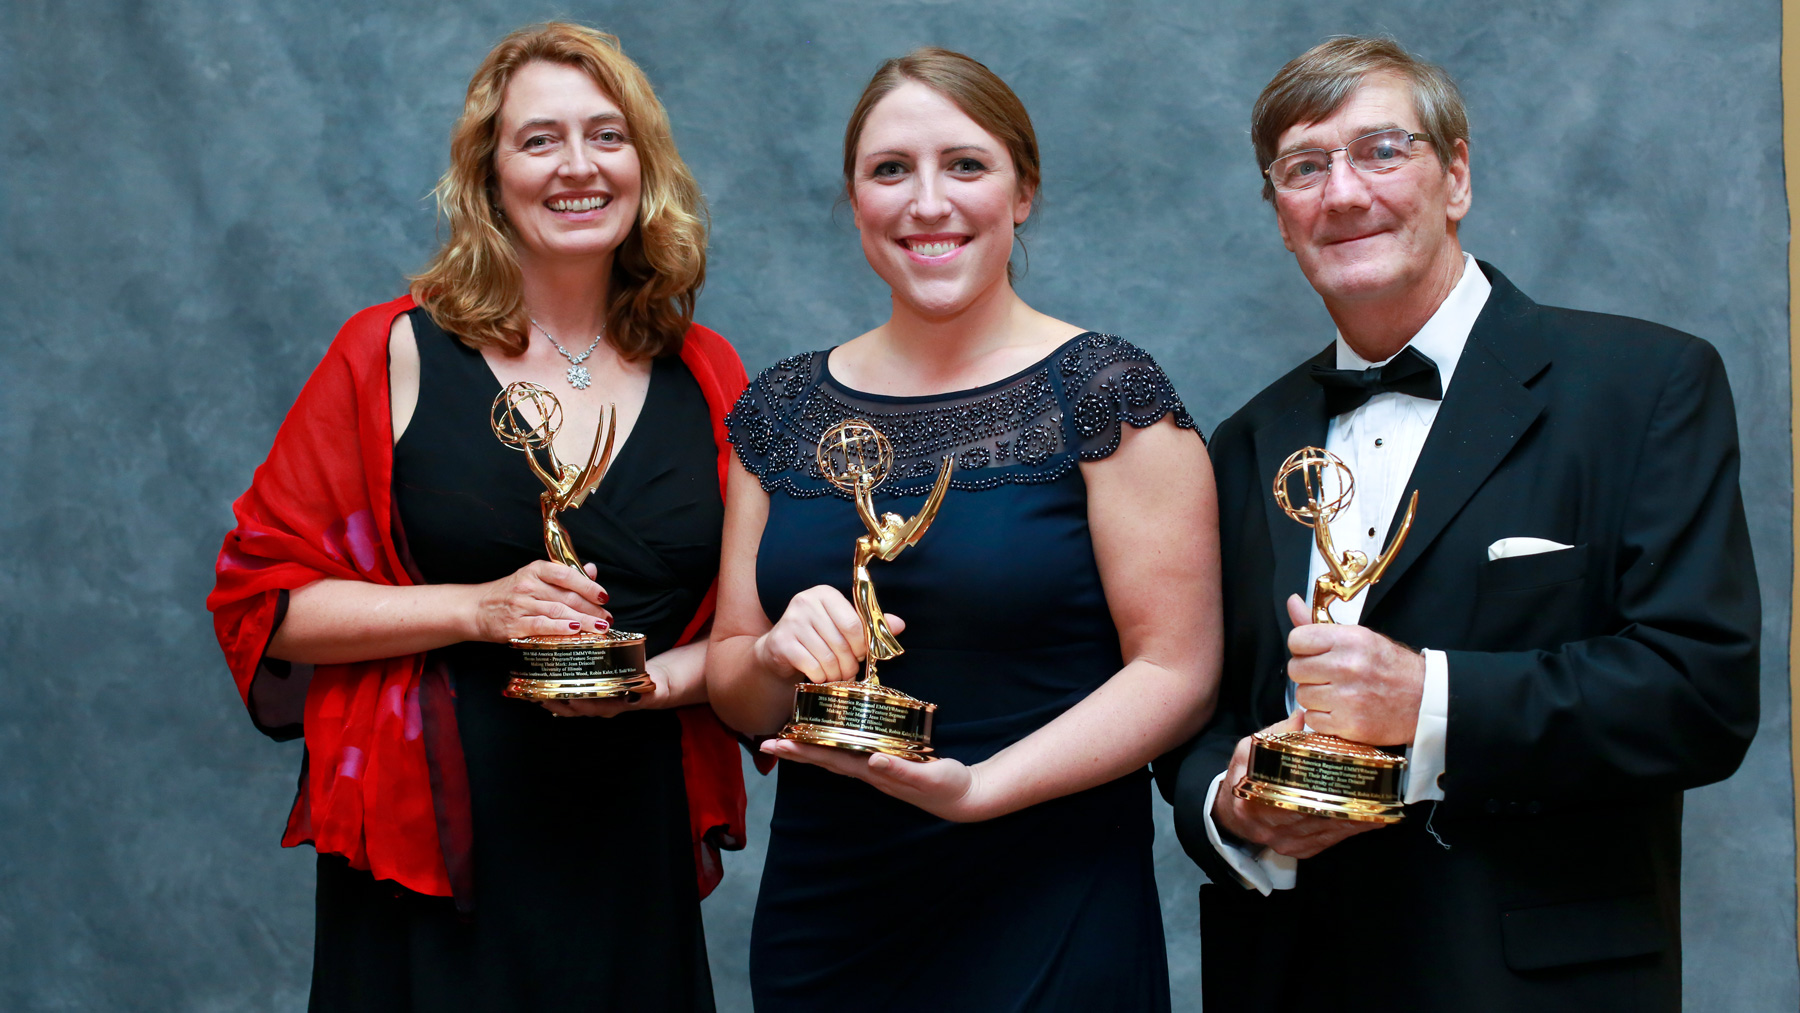 Big Ten Network documentary producers for Illinois: Alison Davis Wood, Tim Hartin, and Kaitlin Southworth